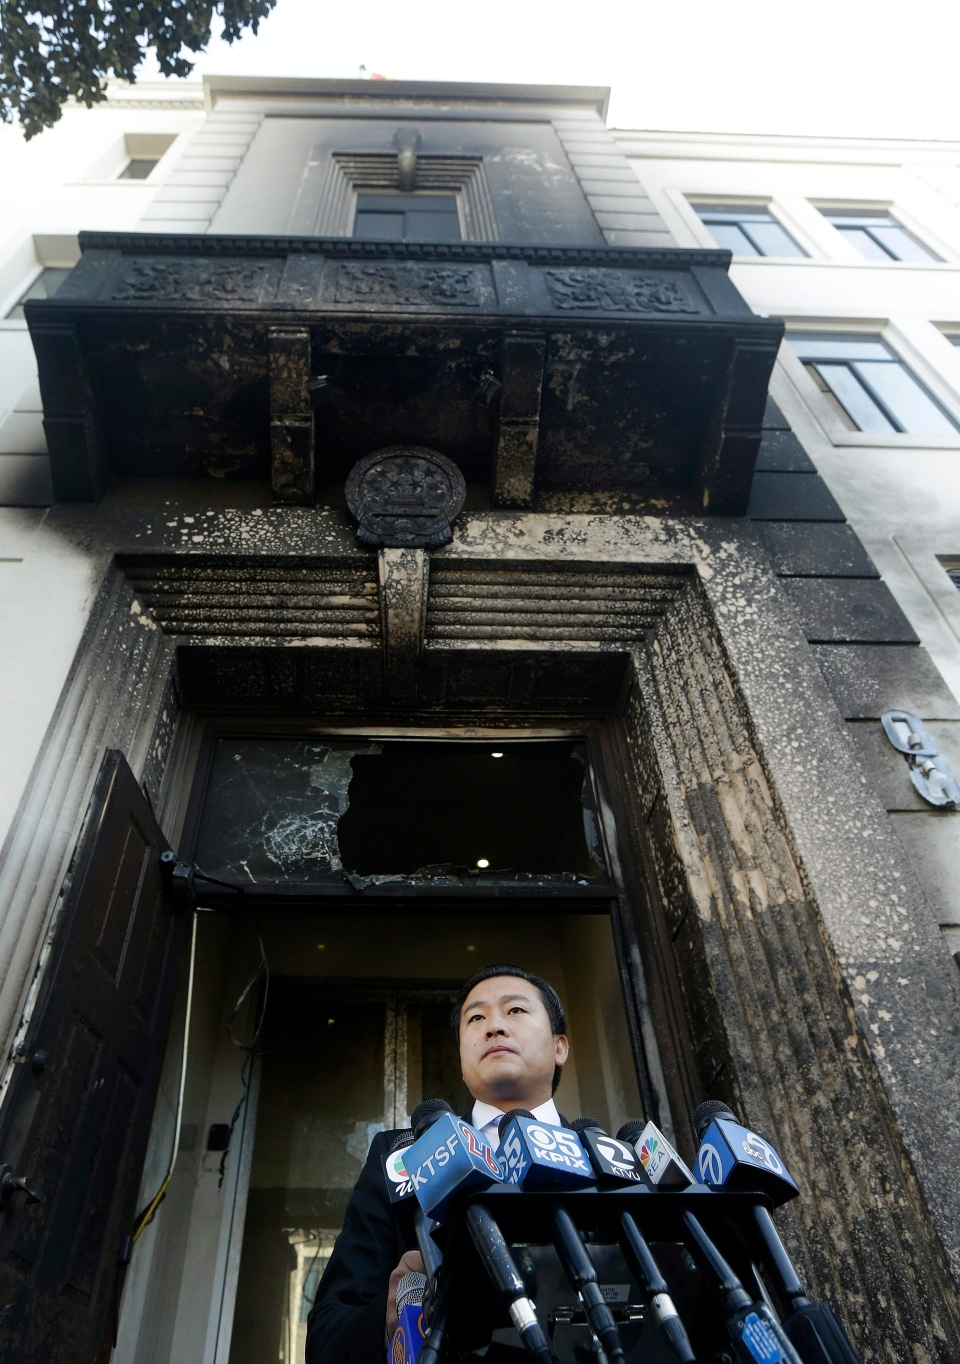 Wang Chuan, spokesperson for the Chinese Consulate, speaks outside of the damaged entrance to the consulate in San Francisco on Thursday, Jan. 2, 2014. The consulate said Thursday that its compound was damaged in an arson attack and urged American authorities to protect the safety of its diplomats and its premises. (AP Photo/Jeff Chiu)